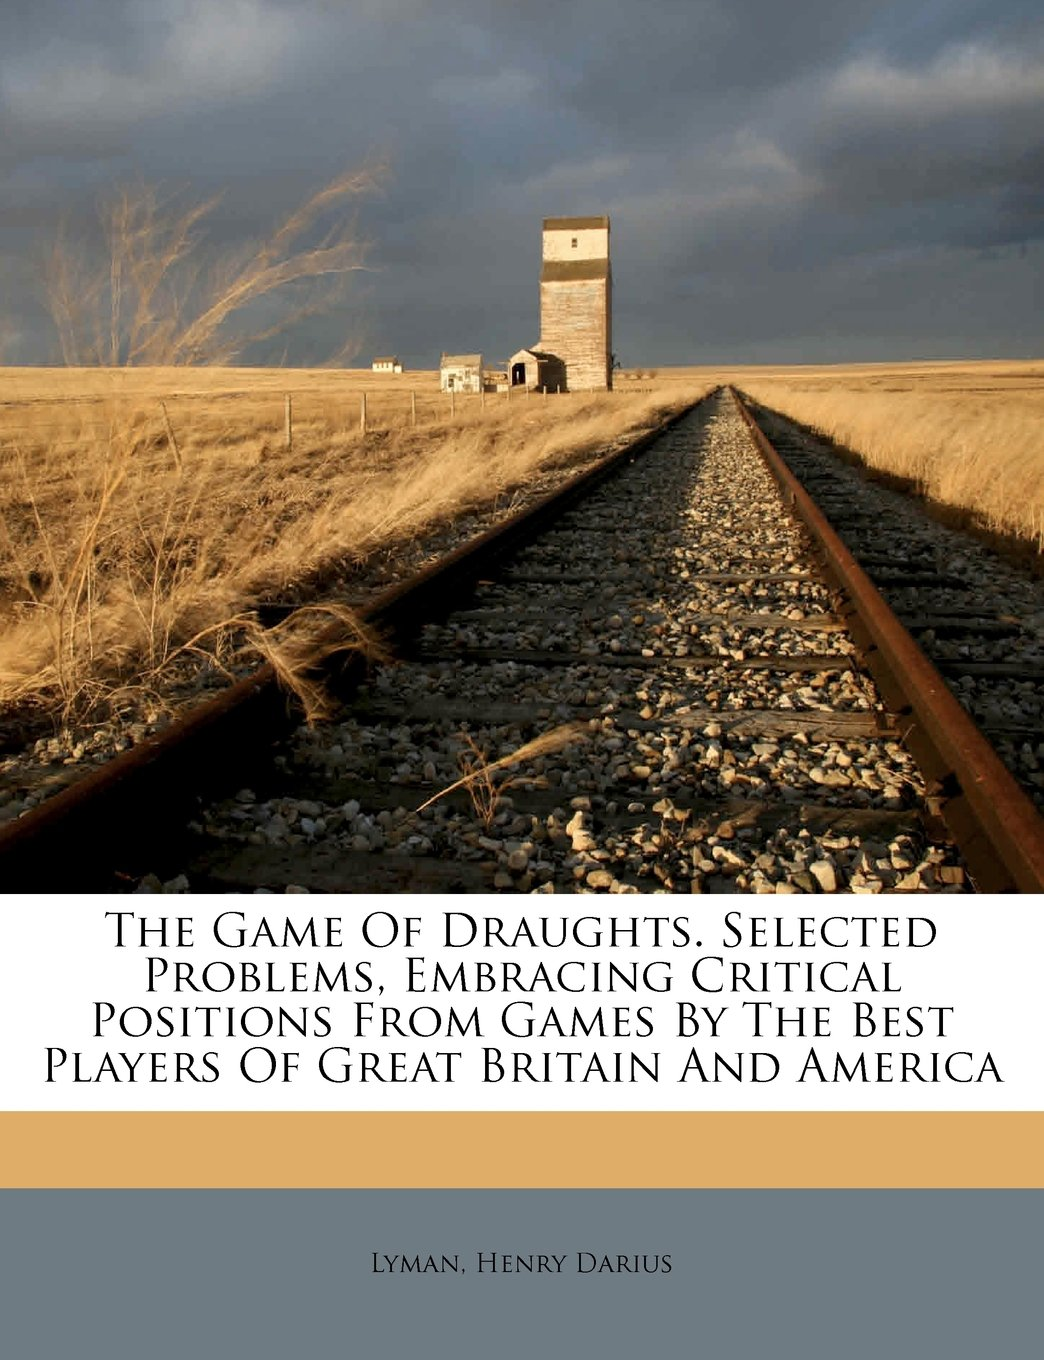 The Game Of Draughts. Selected Problems, Embracing Critical Positions From Games By The Best Players Of Great Britain And America ebook